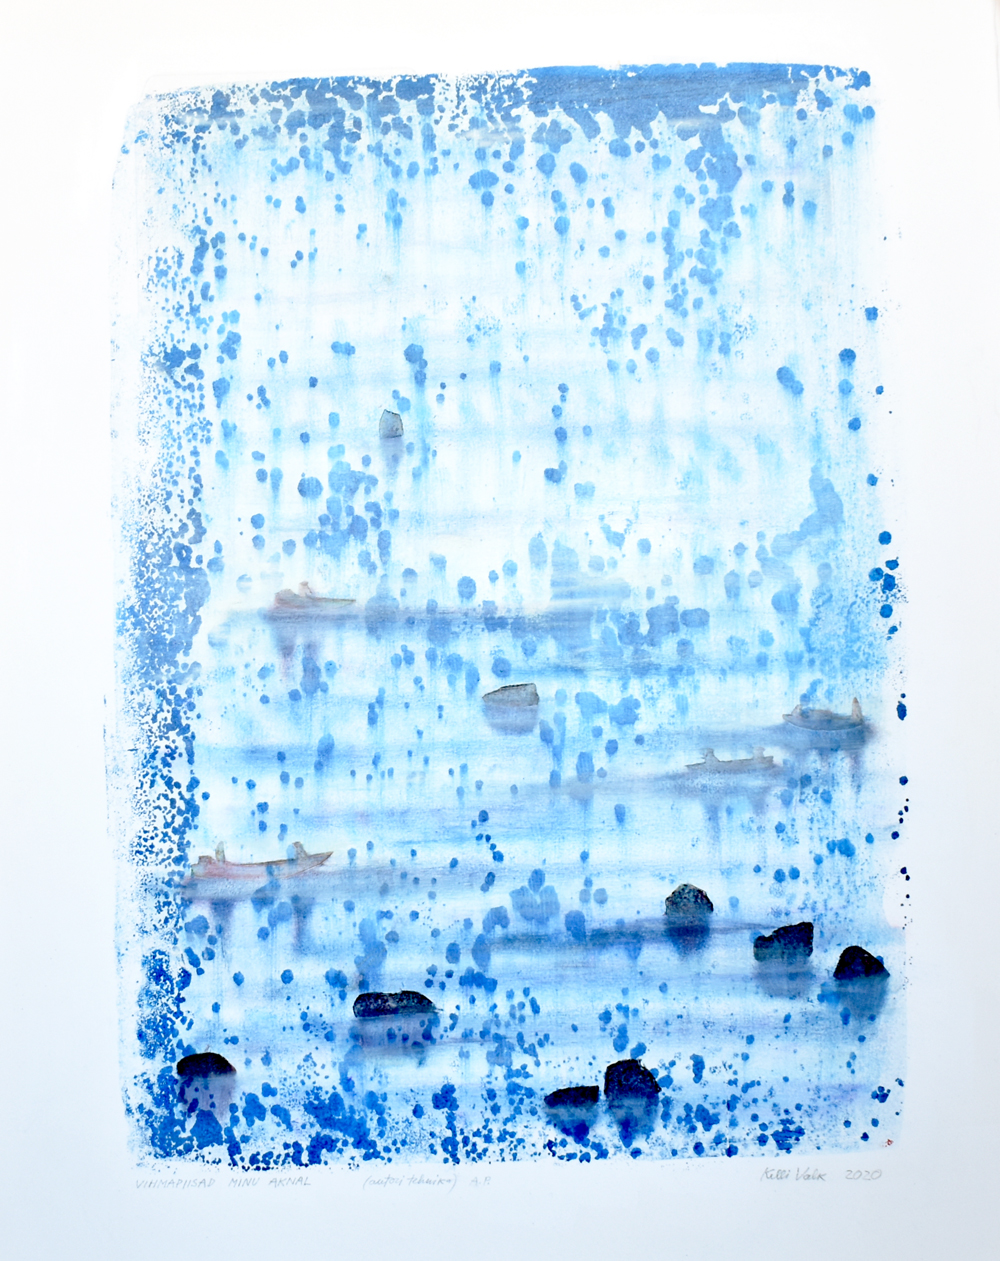 Vihmapiisad minu aknal / Raindrops On My Window (62x45cm, autoritehnika / authors technique)